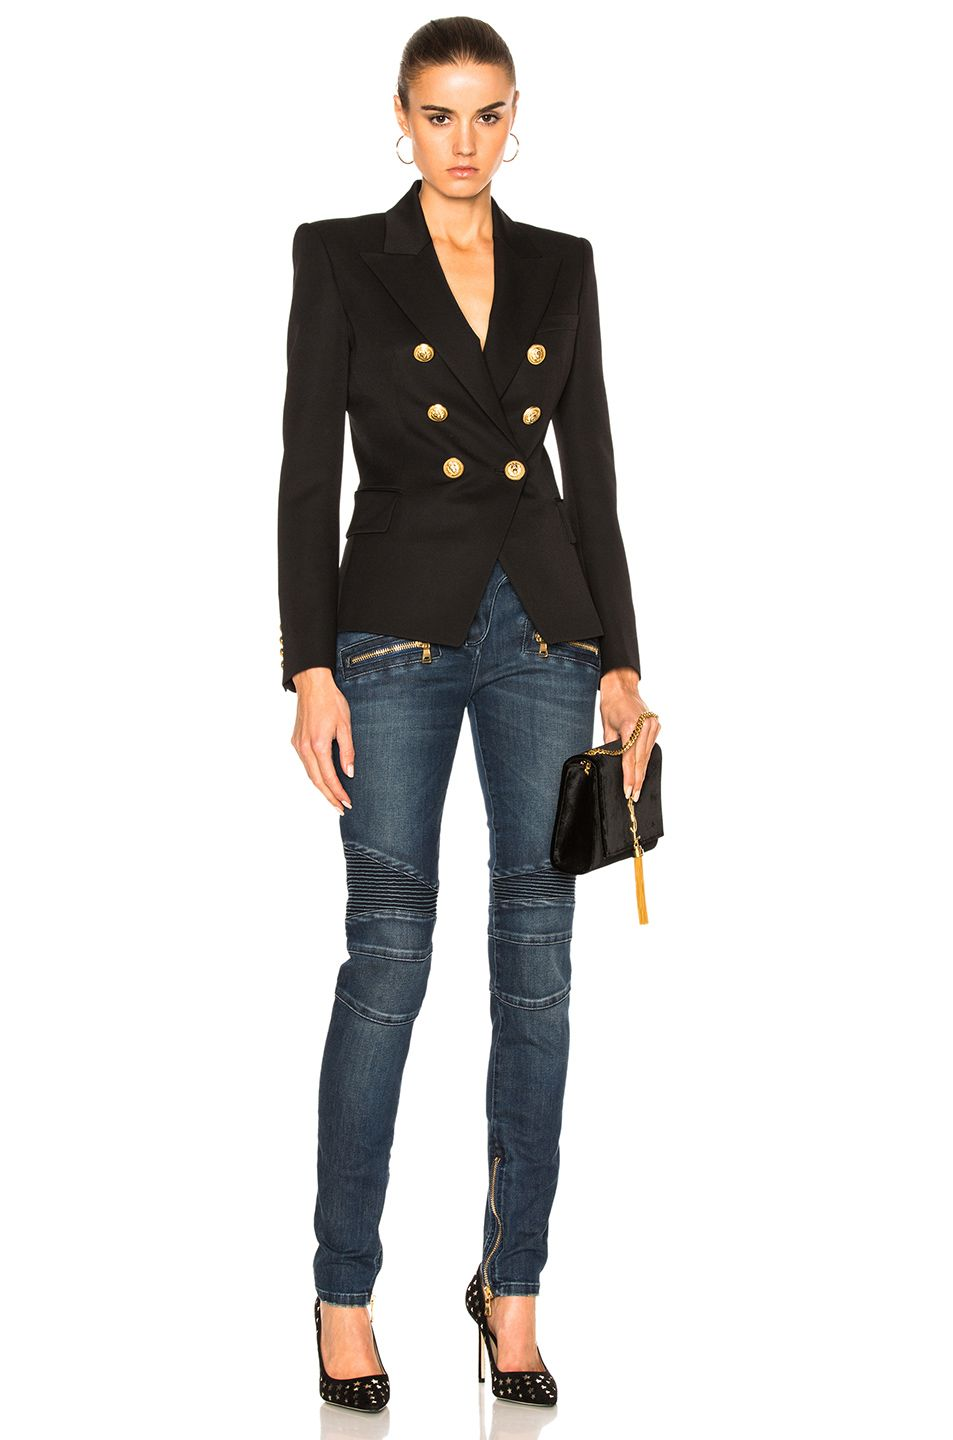 http://www.fwrd.com/product-balmain-double-breasted-blazer-in-black/BLMF-WO1/?d=Womens